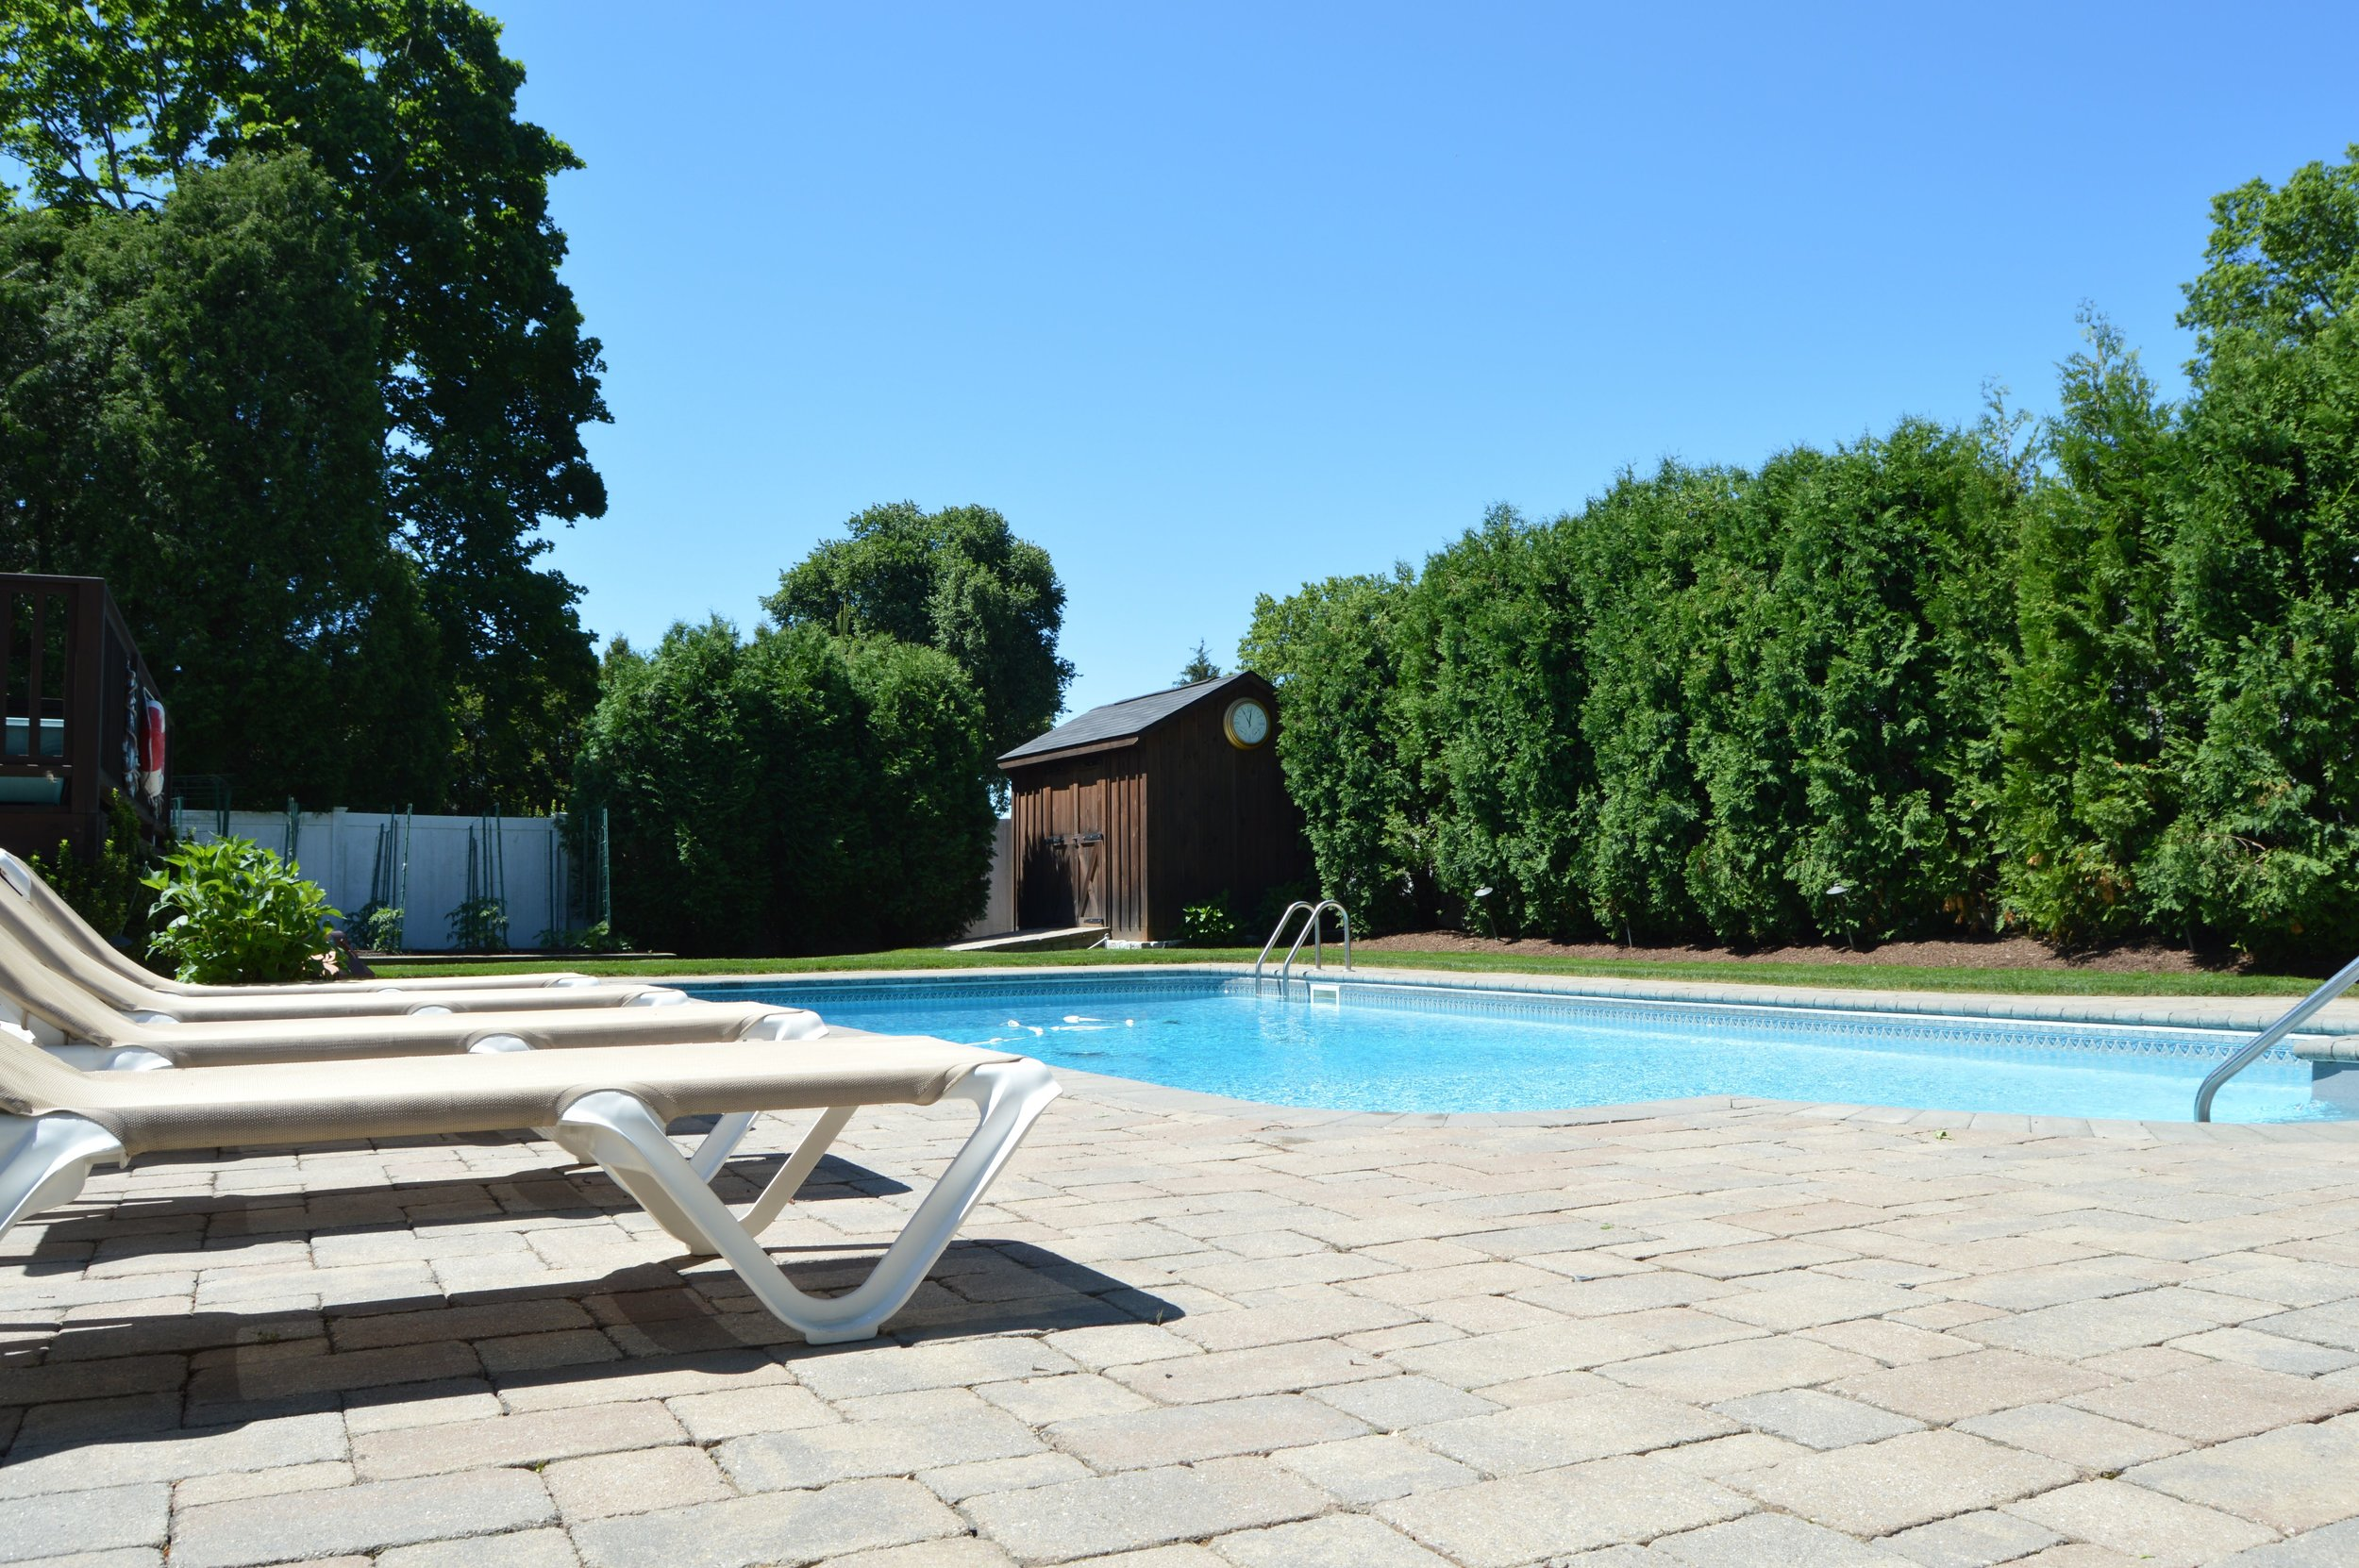 Best landscape design with pool patioin Cold Spring, NY